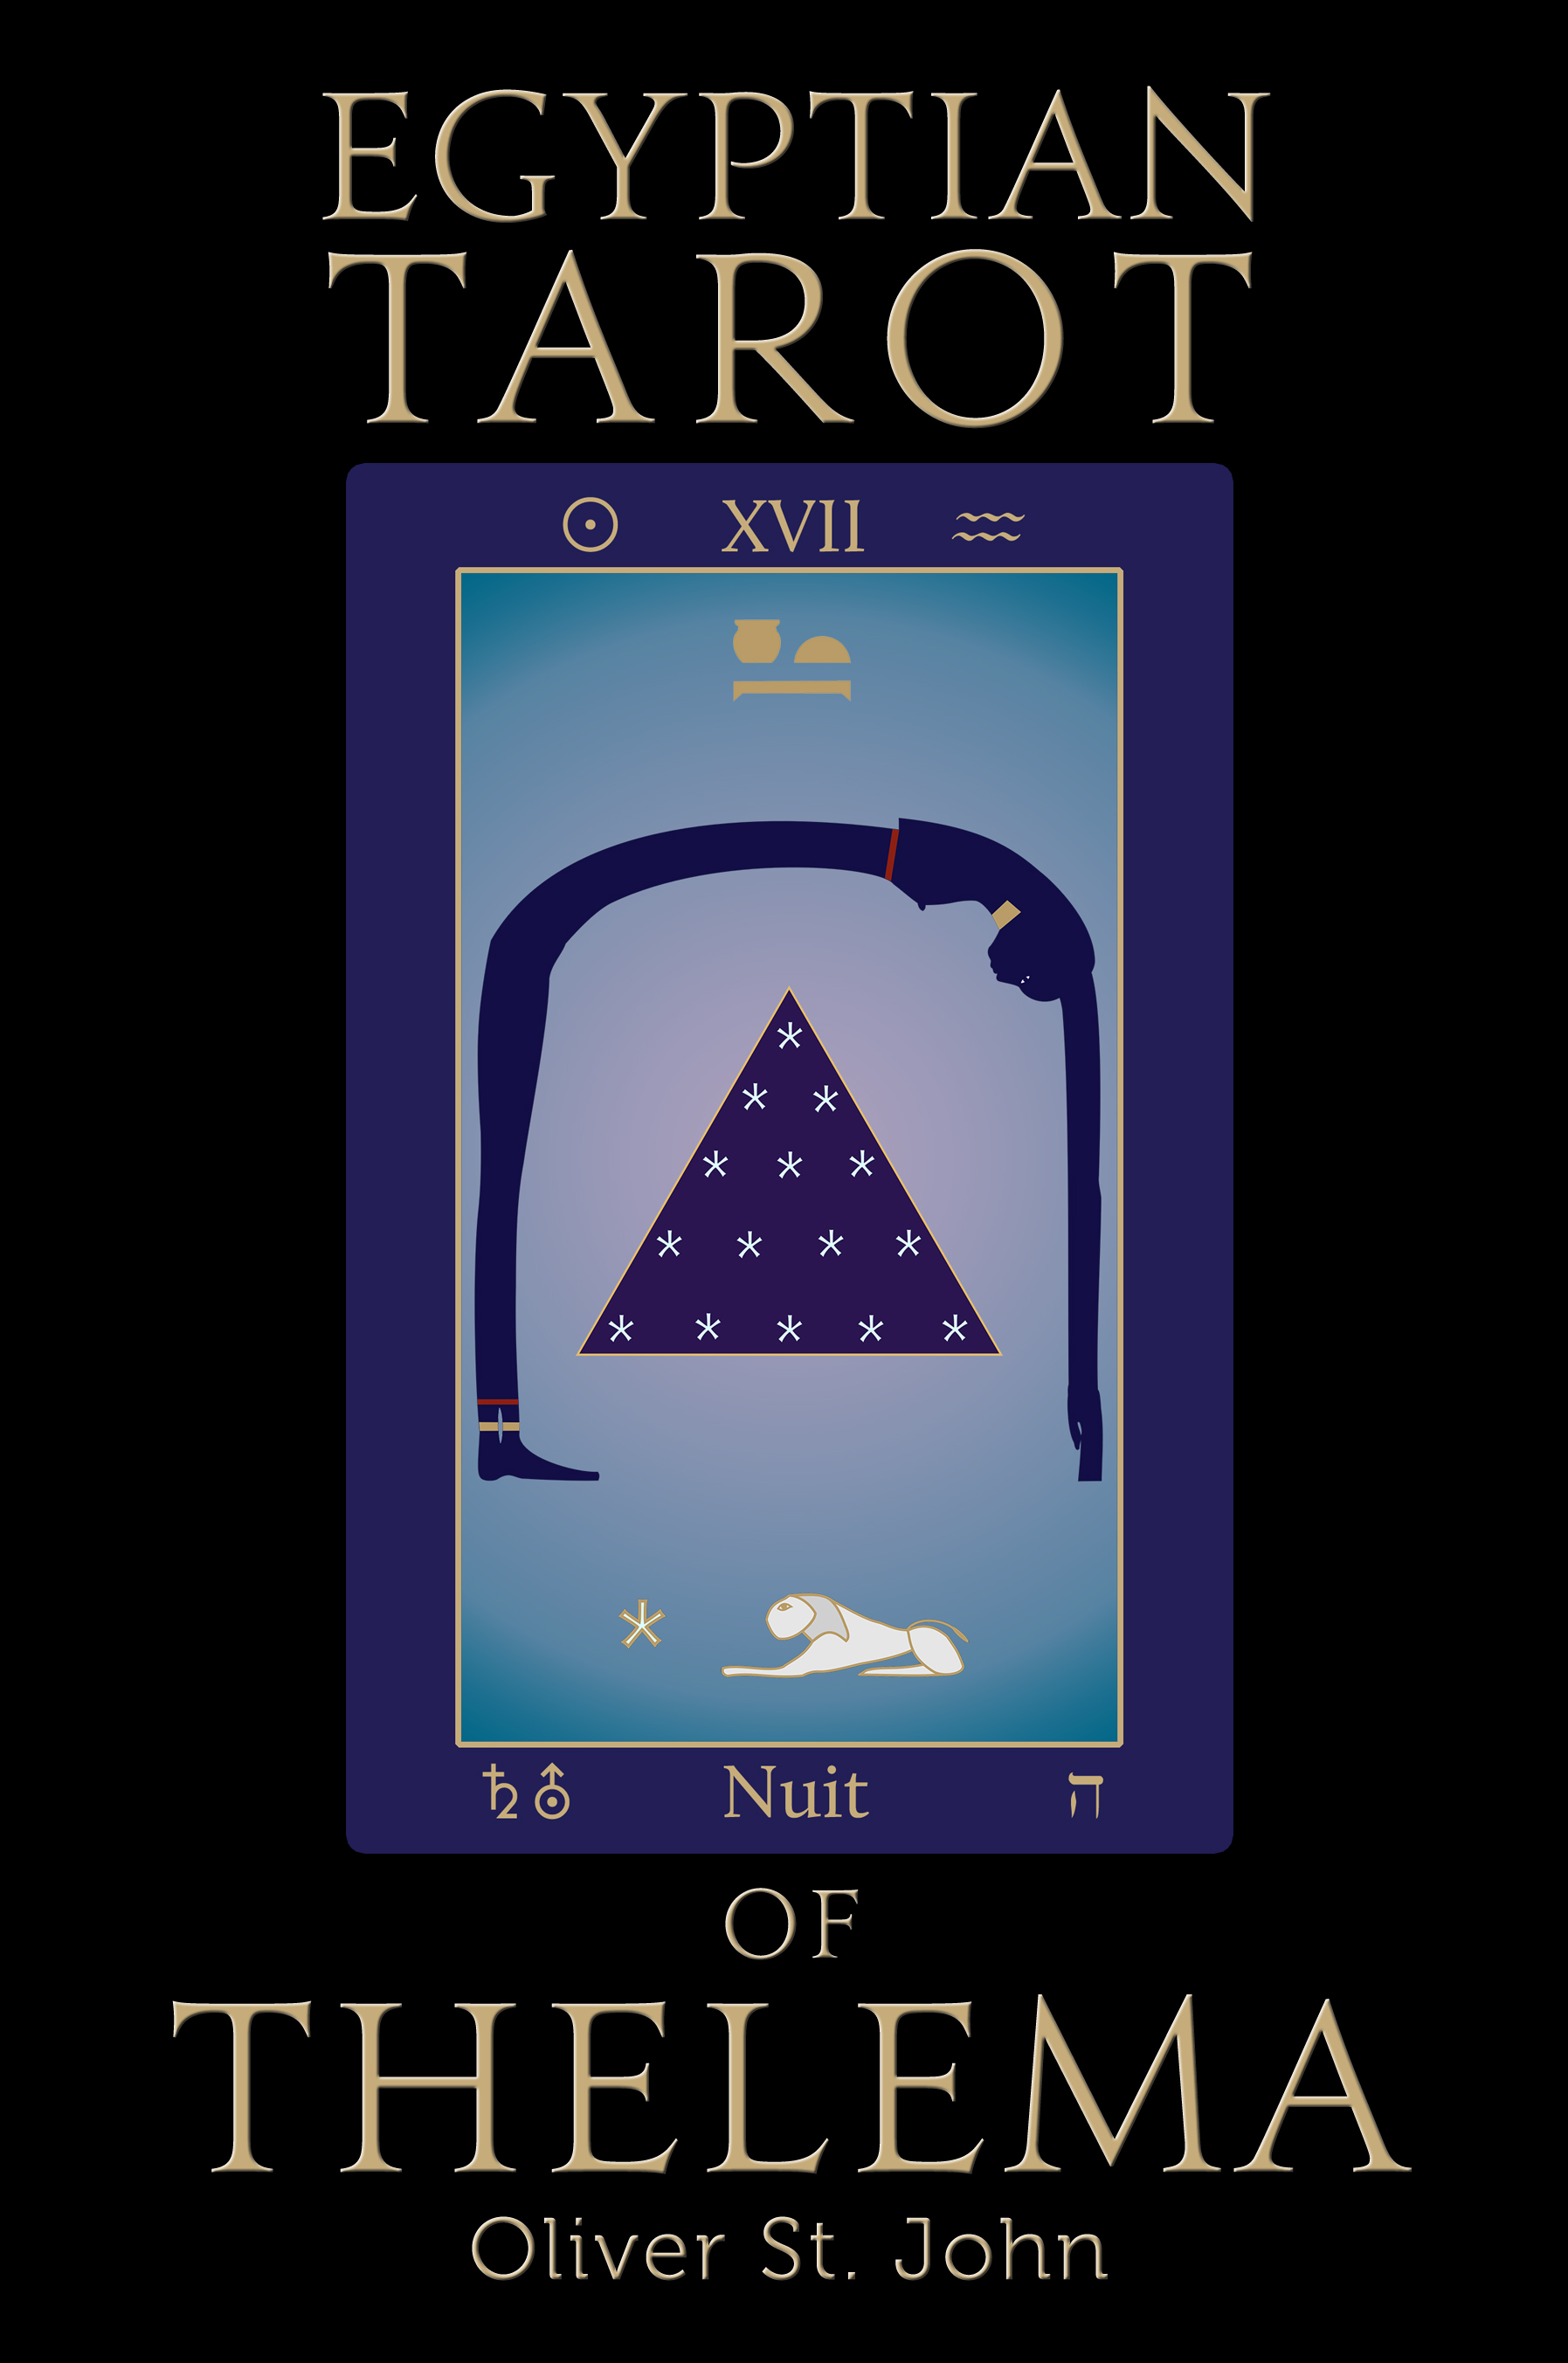 Egyptian Tarot of Thelema (book cover)